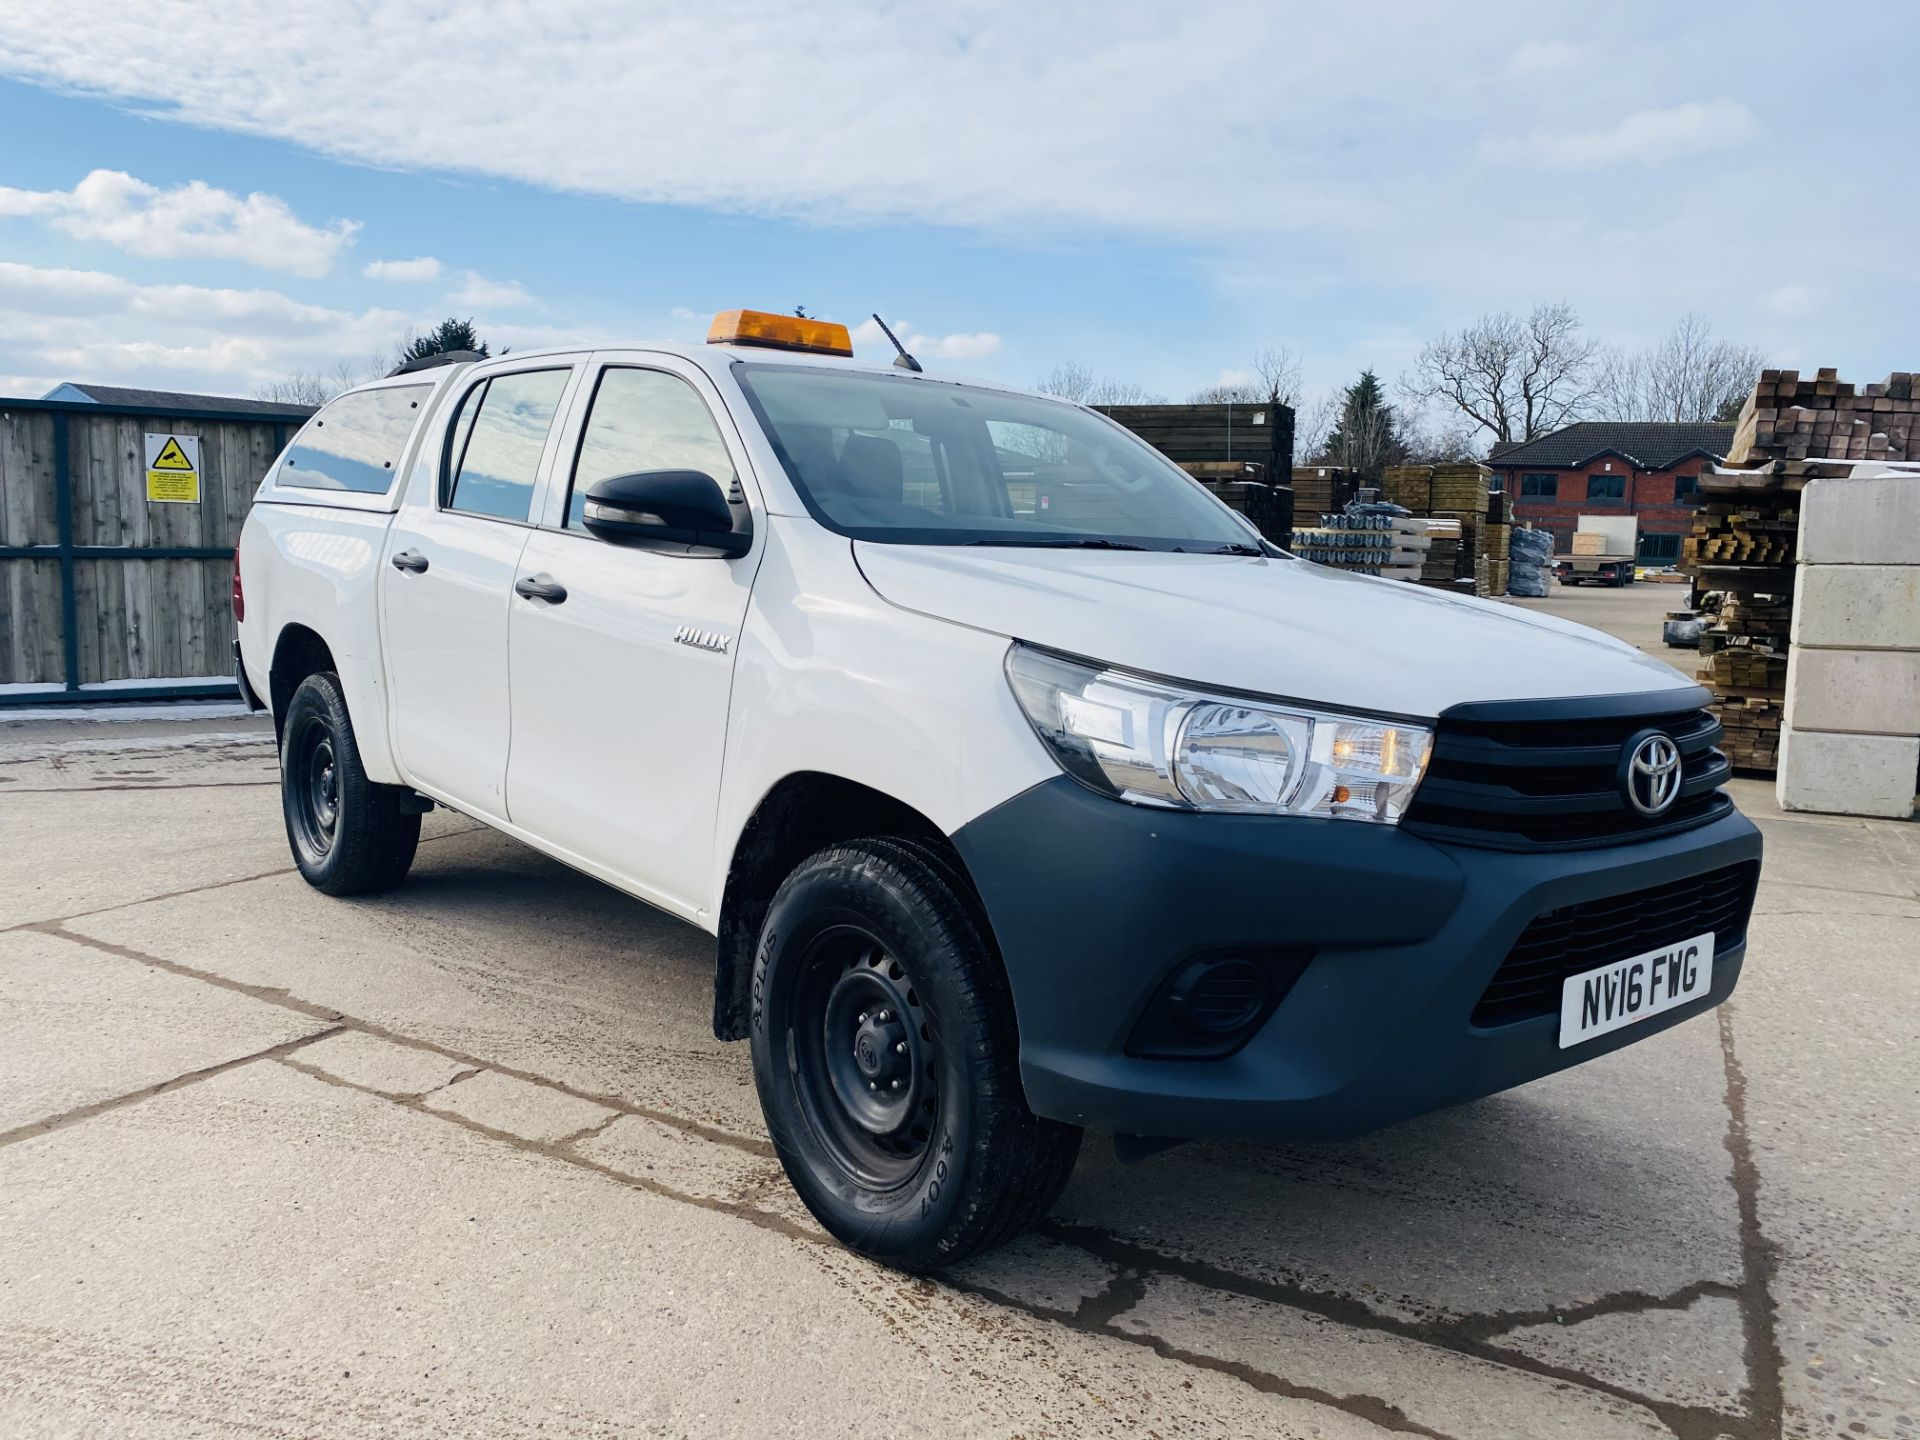 """TOYOTA HILUX """"ACTIVE"""" DOUBLE CAB PICK-UP (2016 - NEW MODEL) 1 OWNER - AIR CON - REAR CANOPY- LOOK - Image 2 of 19"""